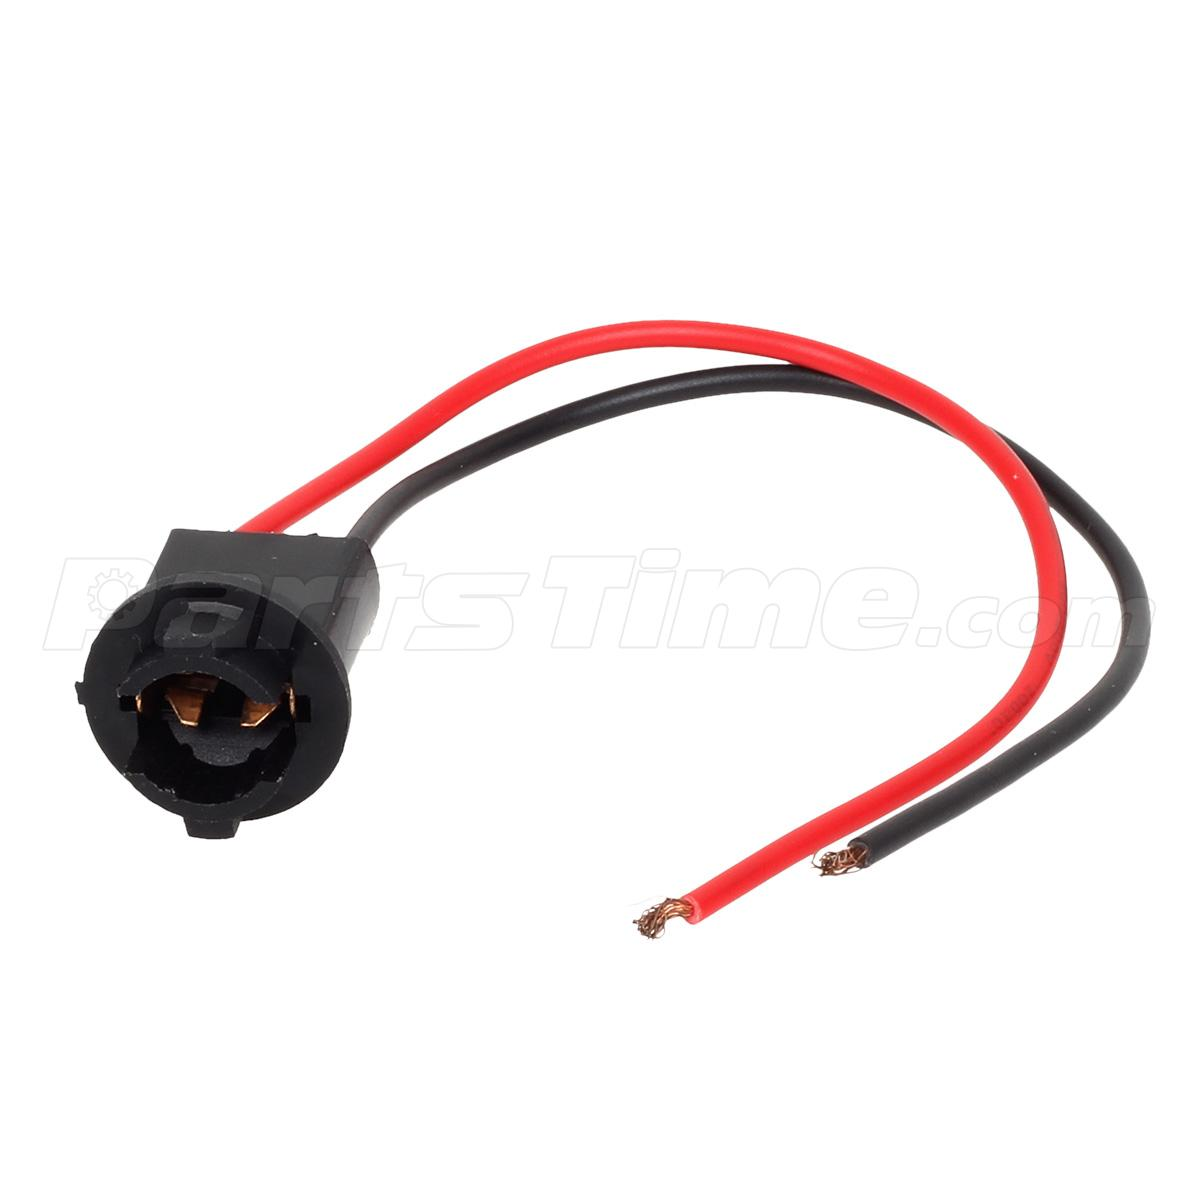 10xt10 w5w led socket extension connector wire harness. Black Bedroom Furniture Sets. Home Design Ideas